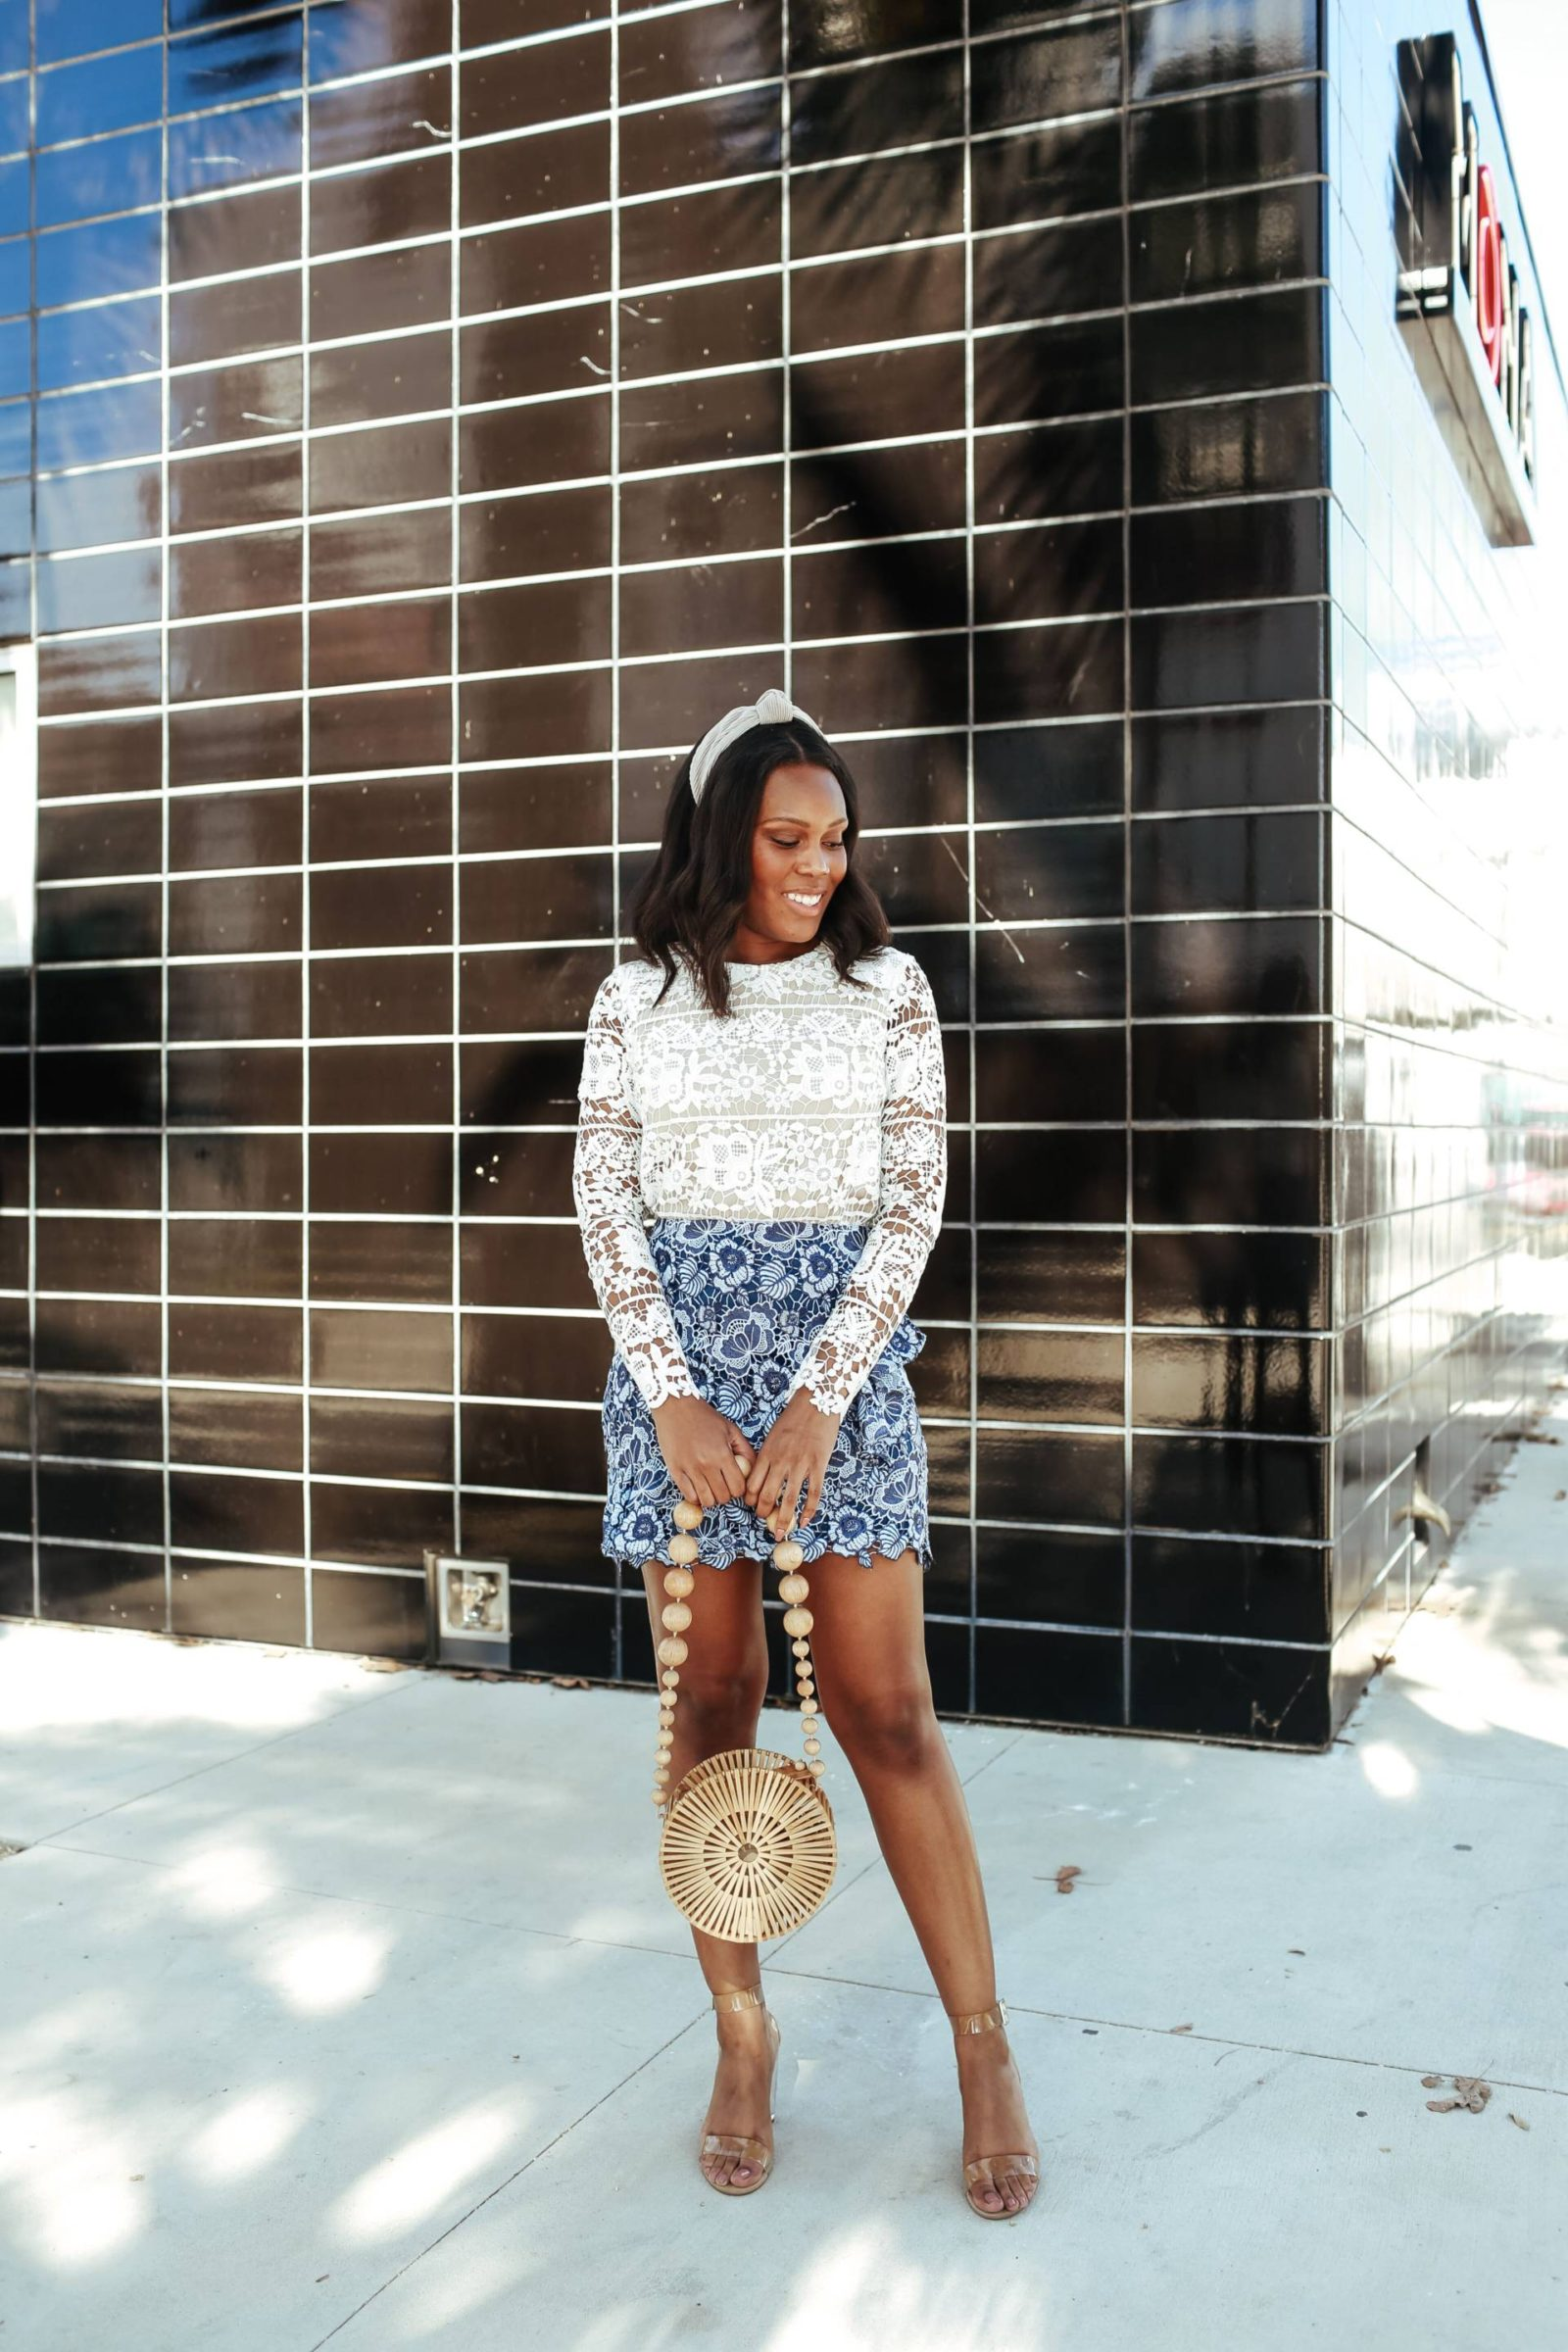 Thrift Store Shopping TIps Outfit-LeFabChic